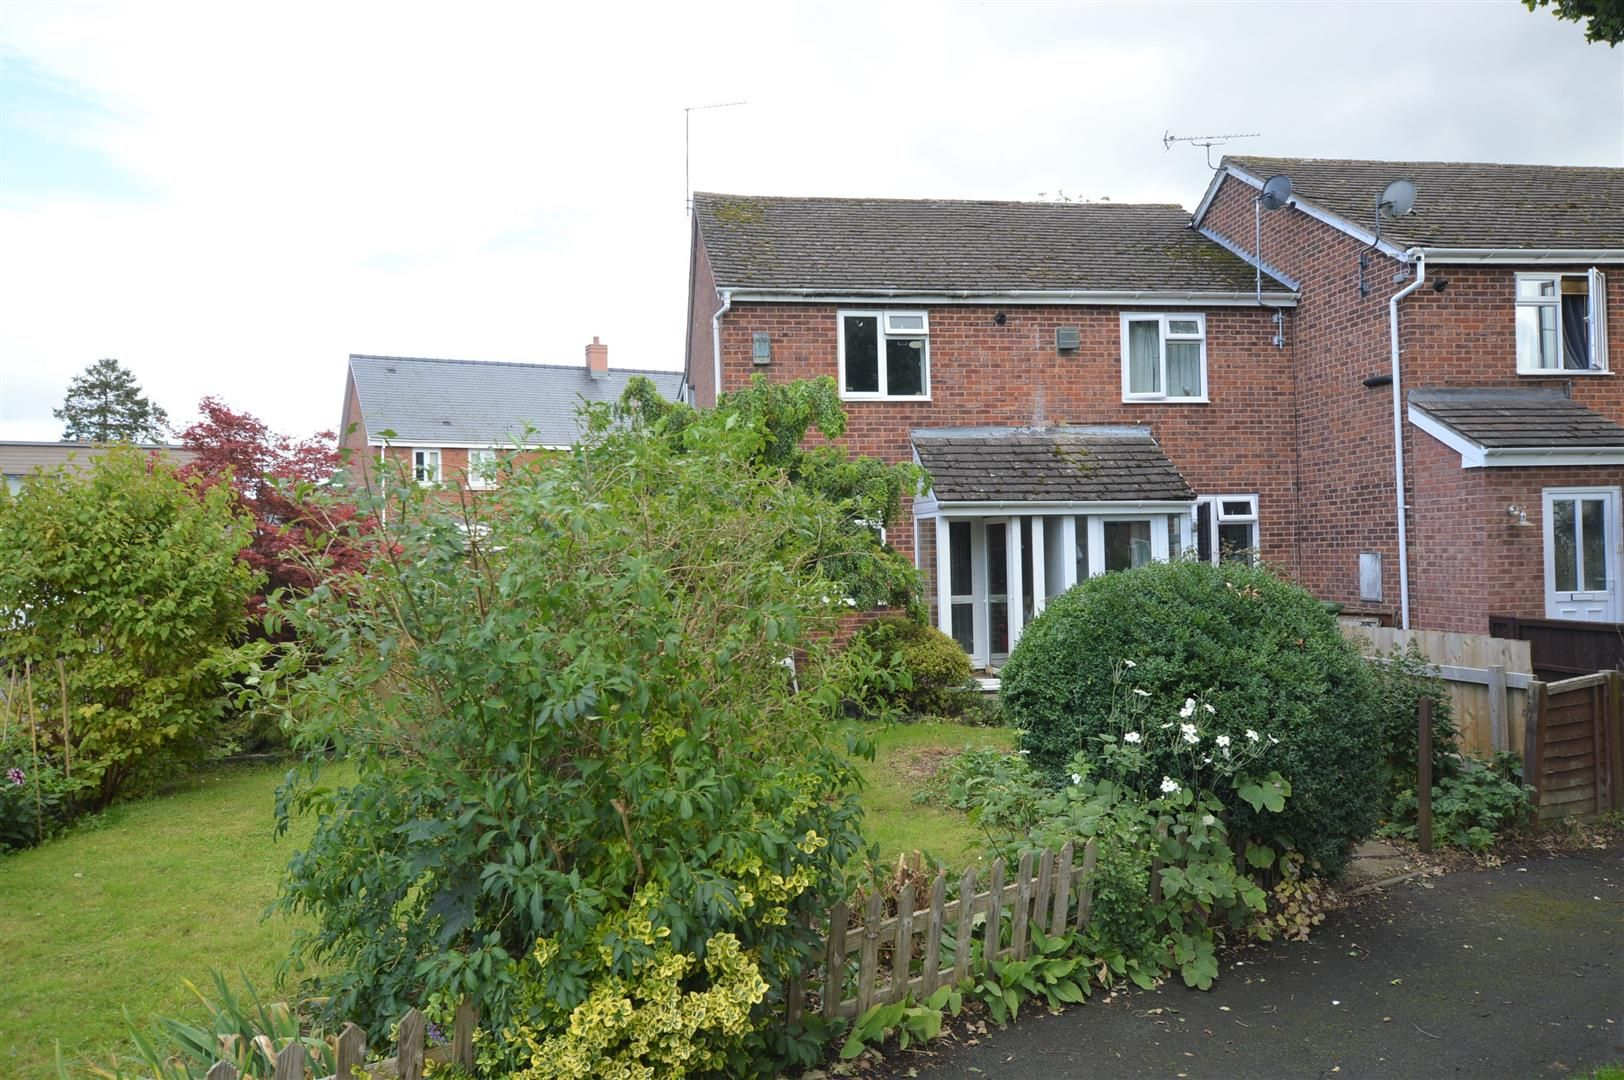 2 bed end of terrace for sale in Leominster - Property Image 1